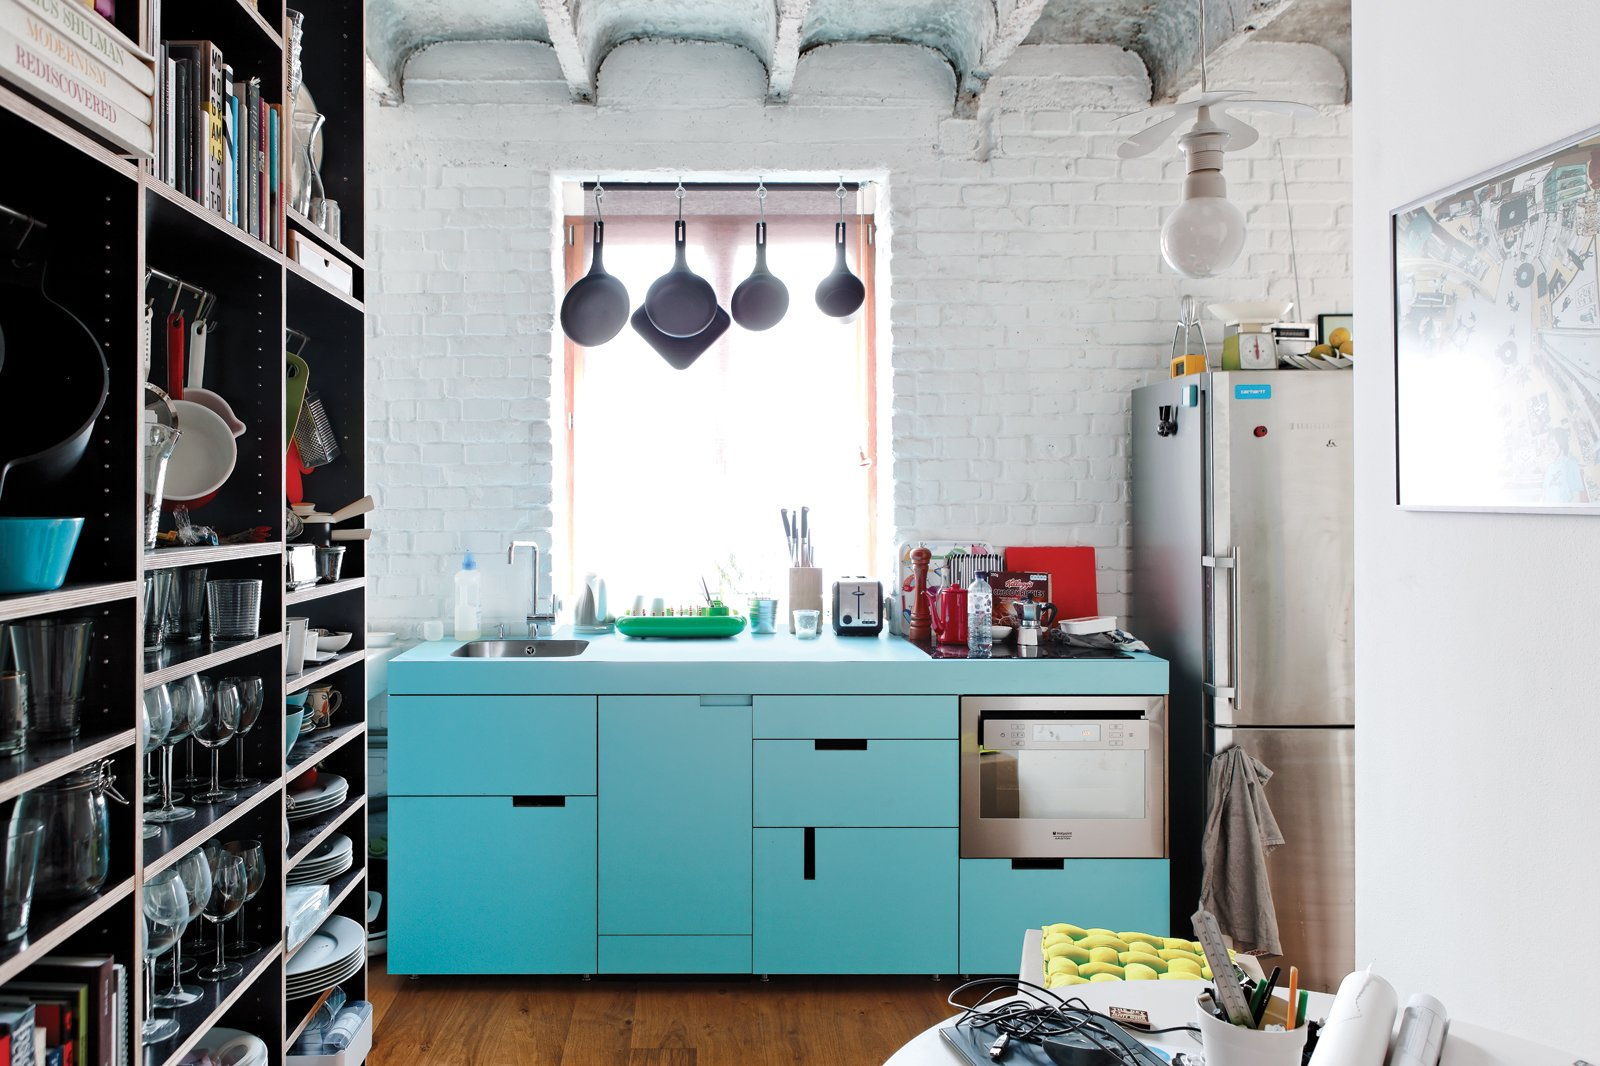 "The budget was nearly as tight as the space in this cheerful renovation of a 516-square-foot flat in Bratislava. The centerpiece of Lukáš Kordík's new kitchen is the cabinetry surrounding the sink, a feat he managed by altering the facing and pulls of an off-the-rack Ikea system. The laminate offers a good punch of blue, and in modernist fashion, Kordík forwent door handles in favor of cutouts. ""I wanted the kitchen to be one simple block of color without any additional design,"" he says.  Photo 1 of 8 in A Little Apartment Gets a Solid Renovation"